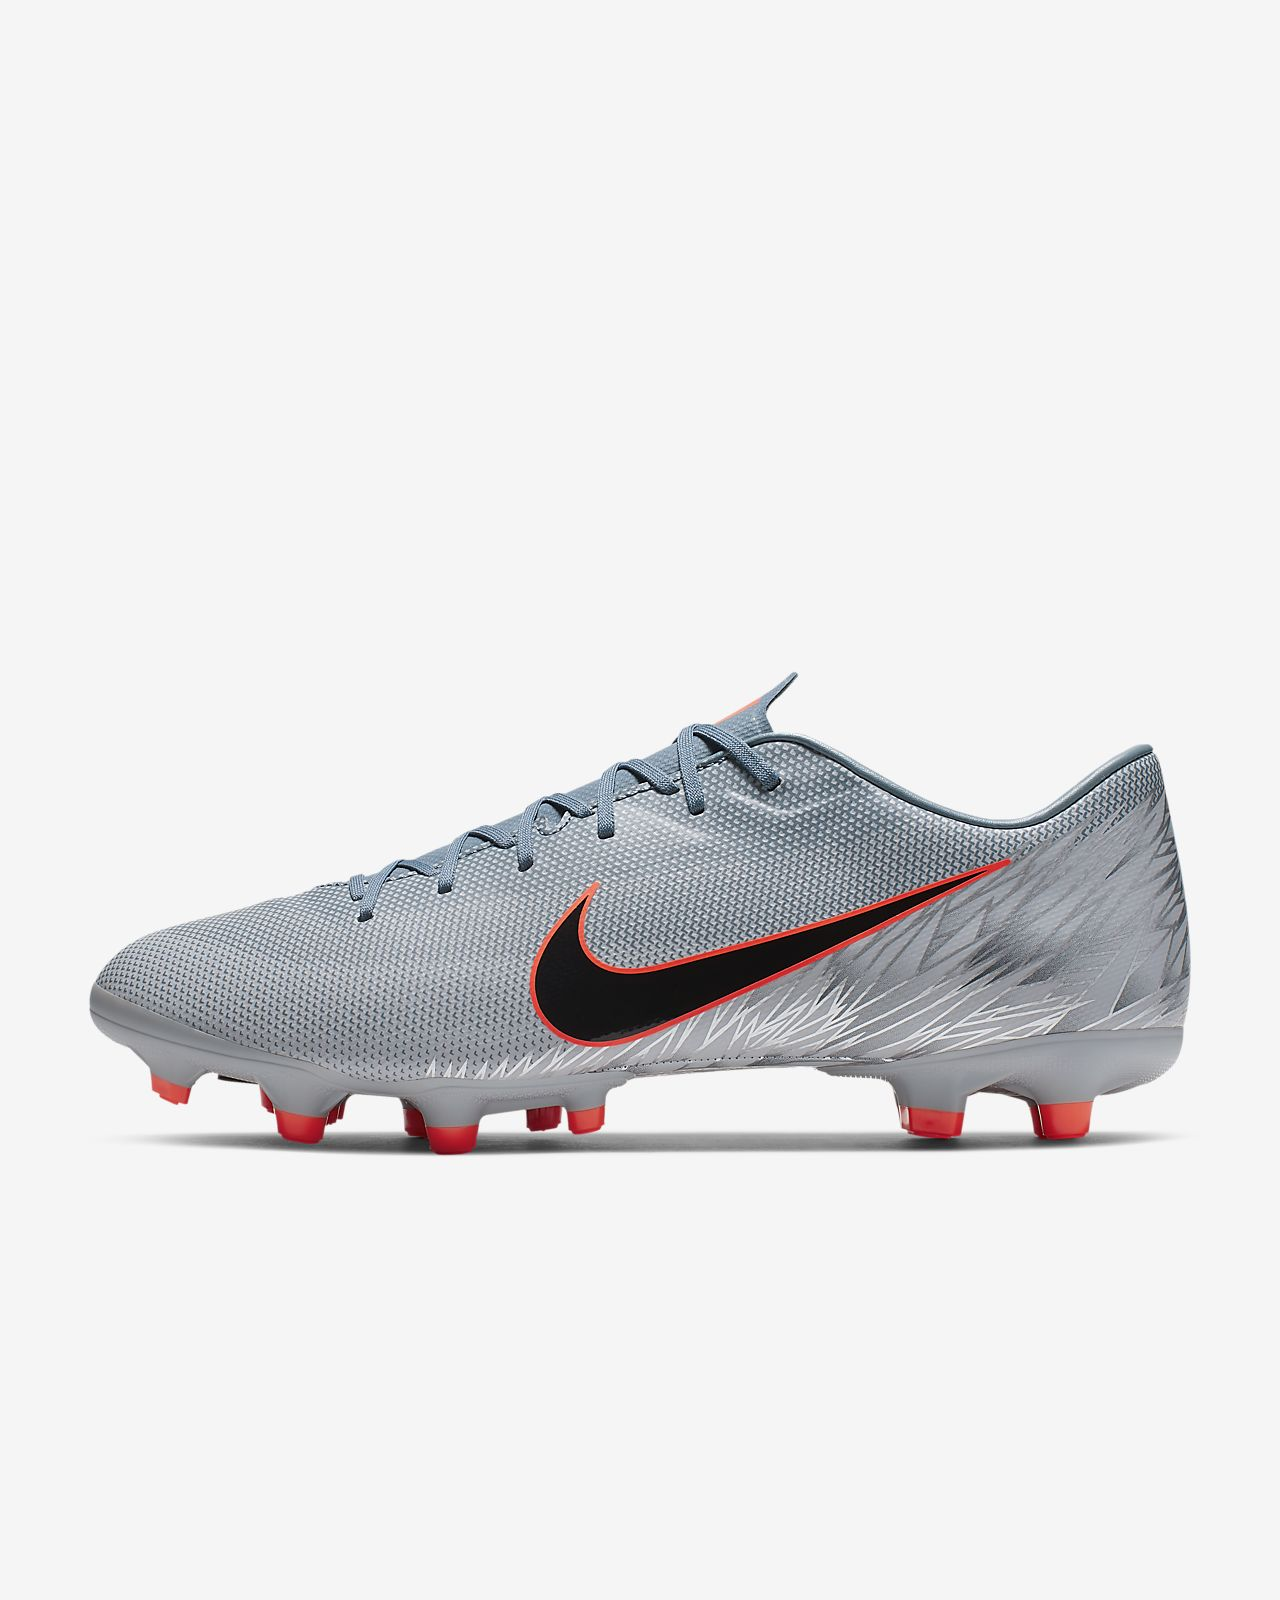 3f08c73a755 Nike Vapor 12 Academy MG Multi-Ground Soccer Cleat